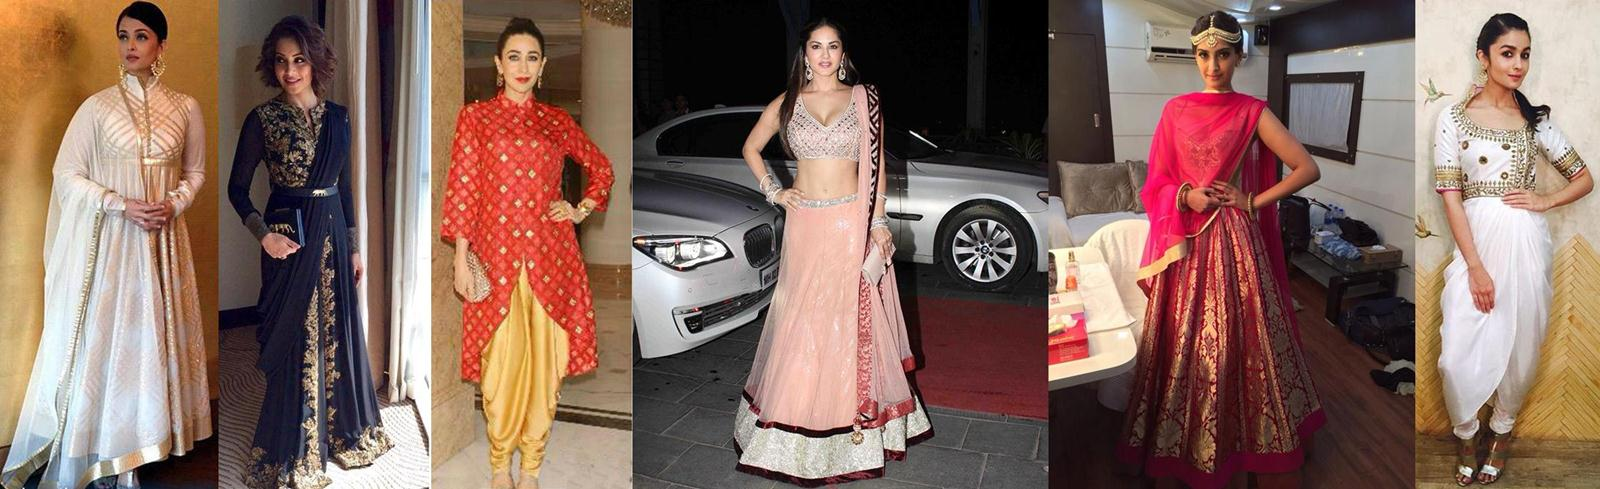 Best of Bollywood Fashion Trends in 2015 | With Pictures - Ethnic